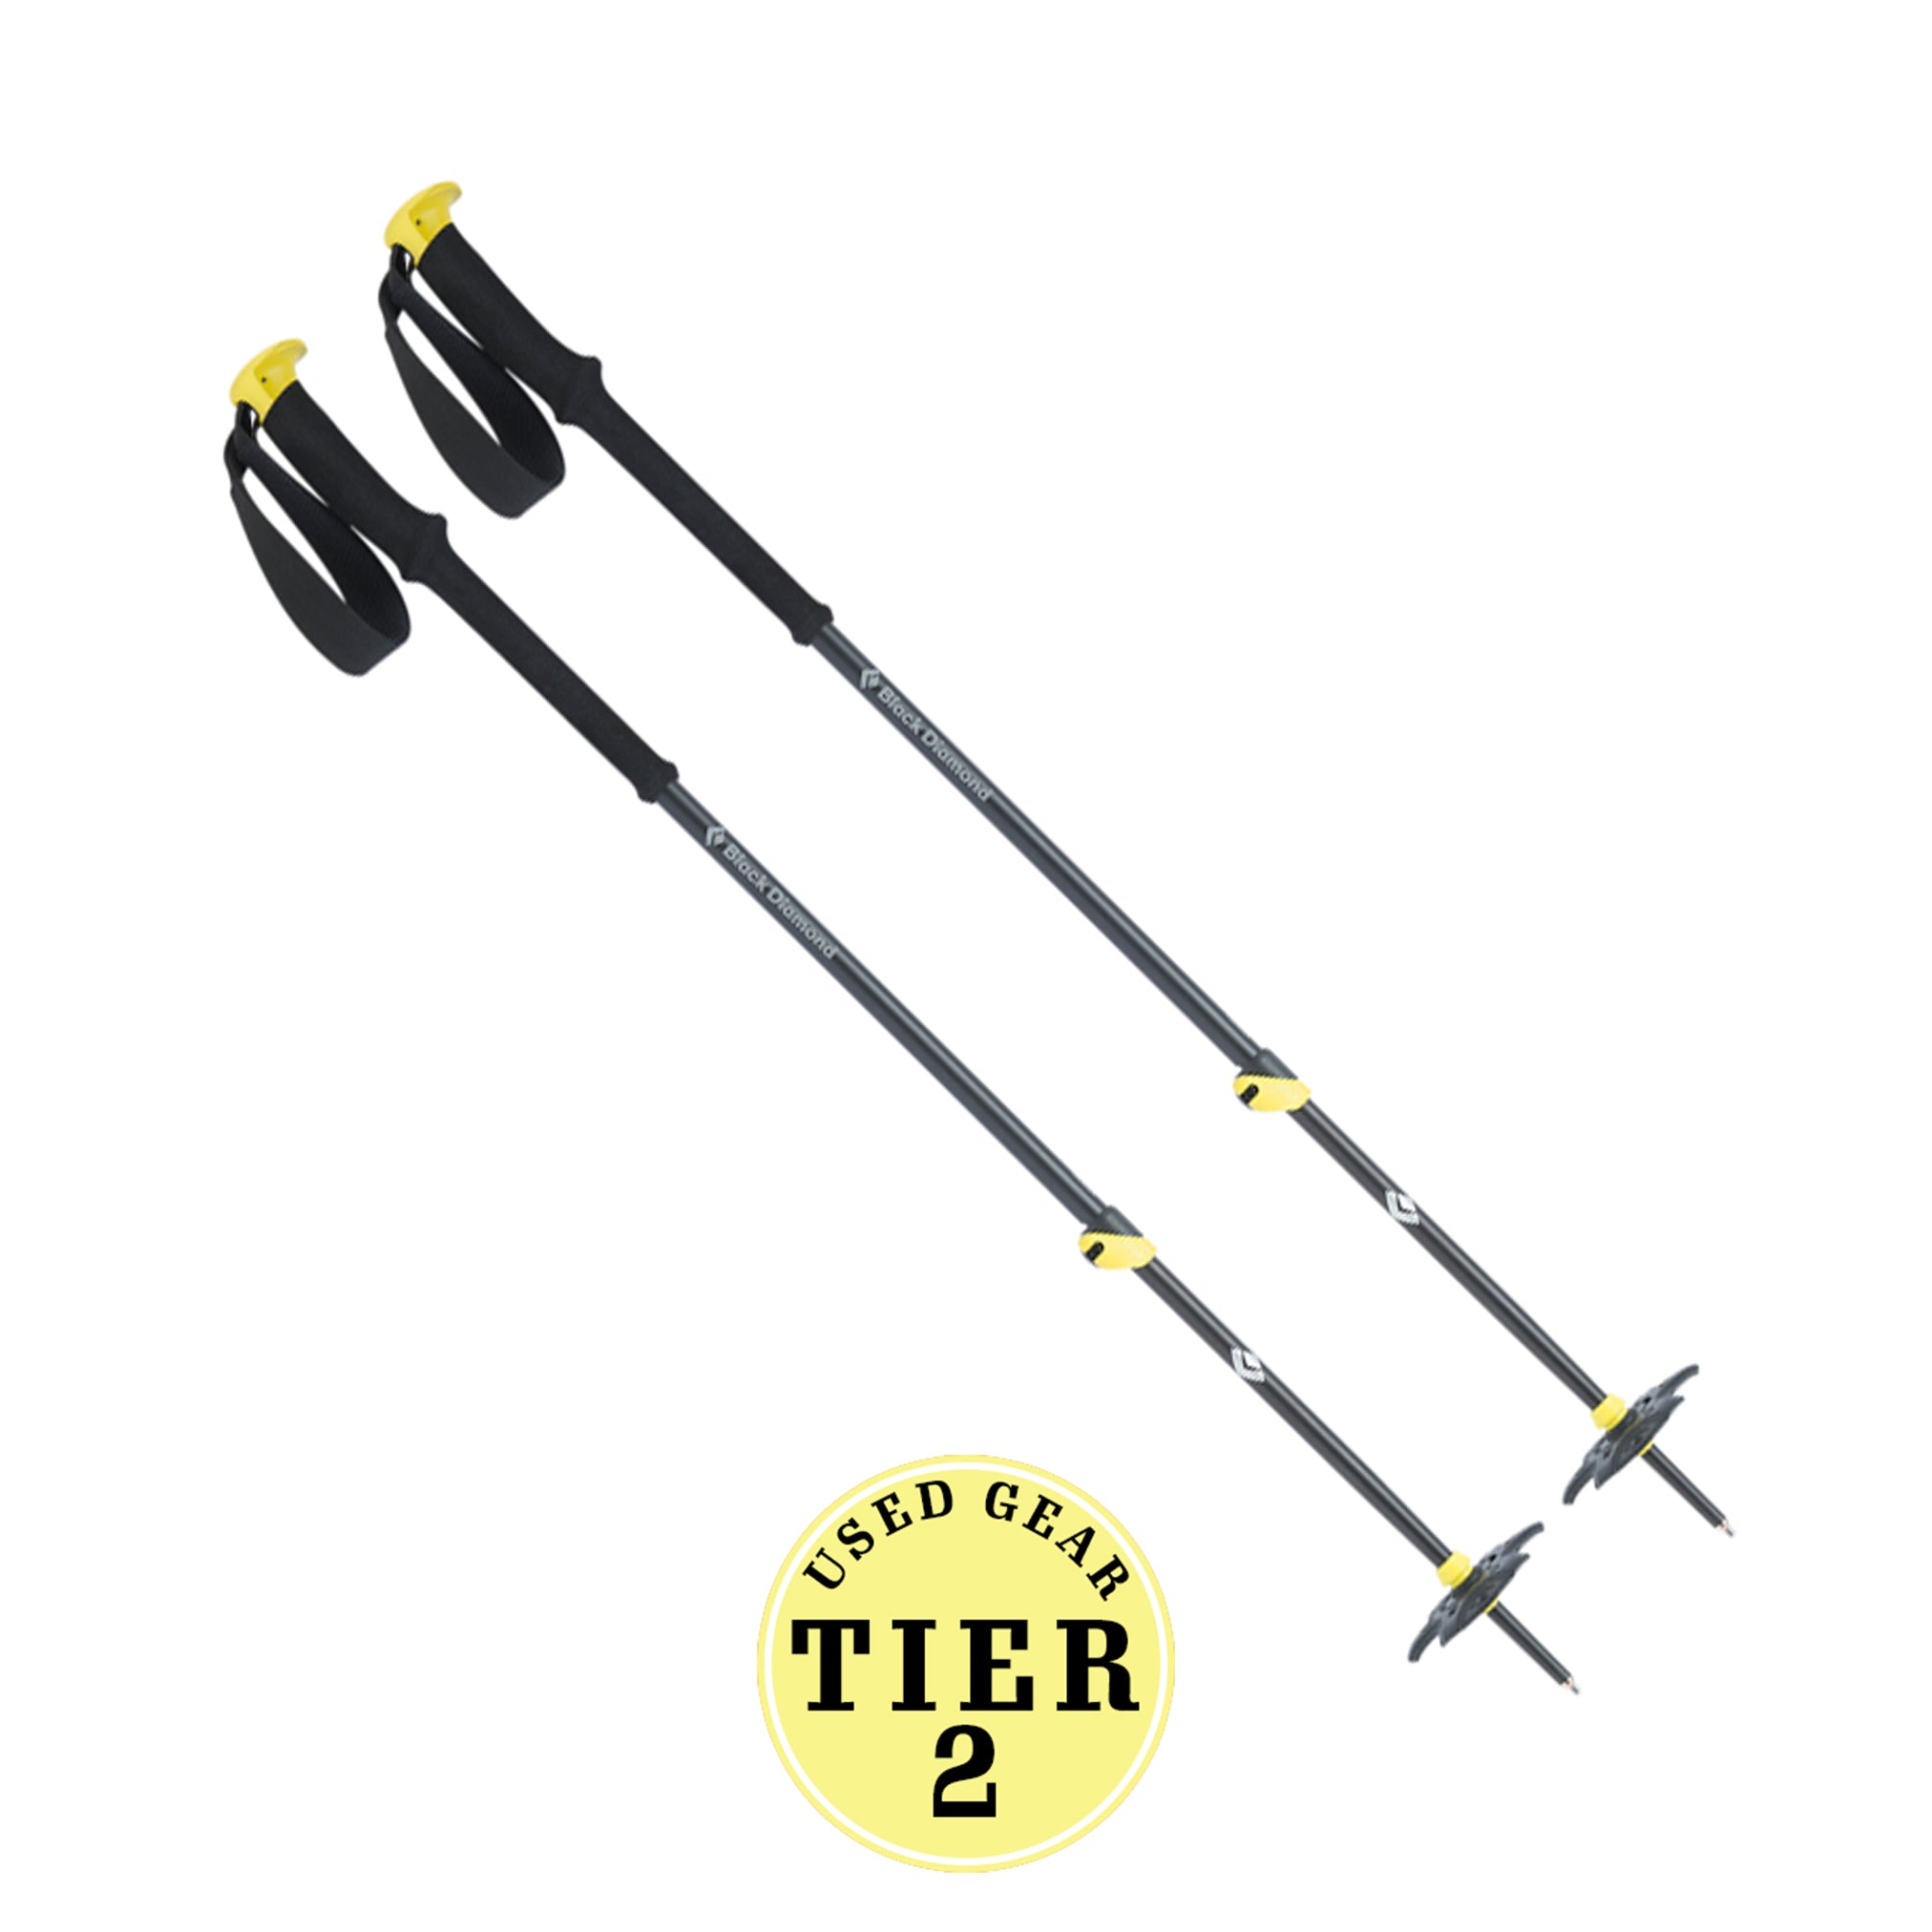 Expedition 2 Ski Poles USED Tier 2